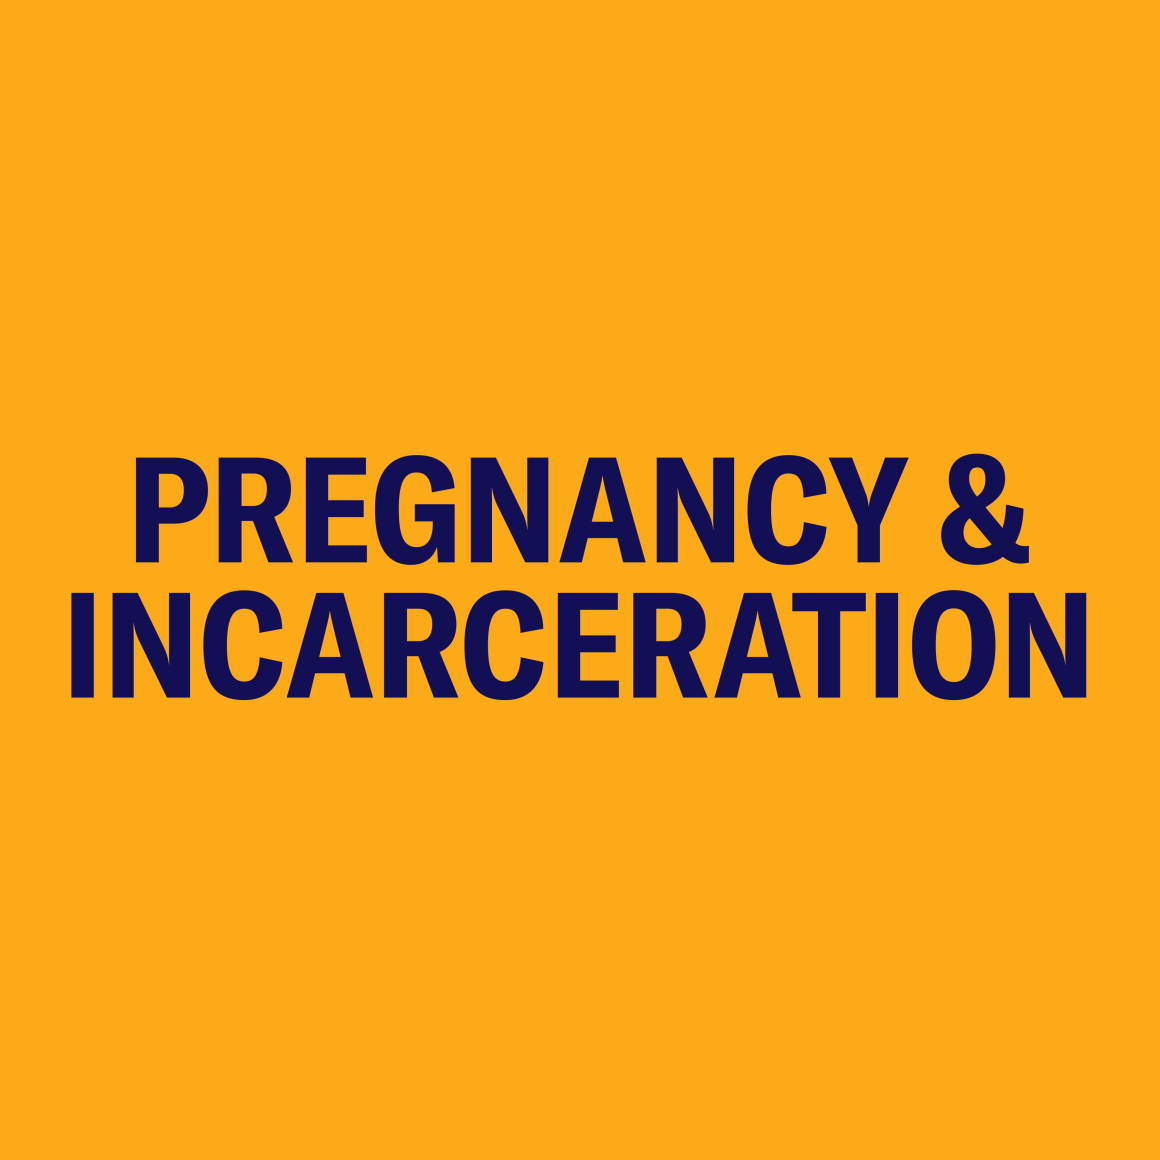 Pregnancy and Incarceration